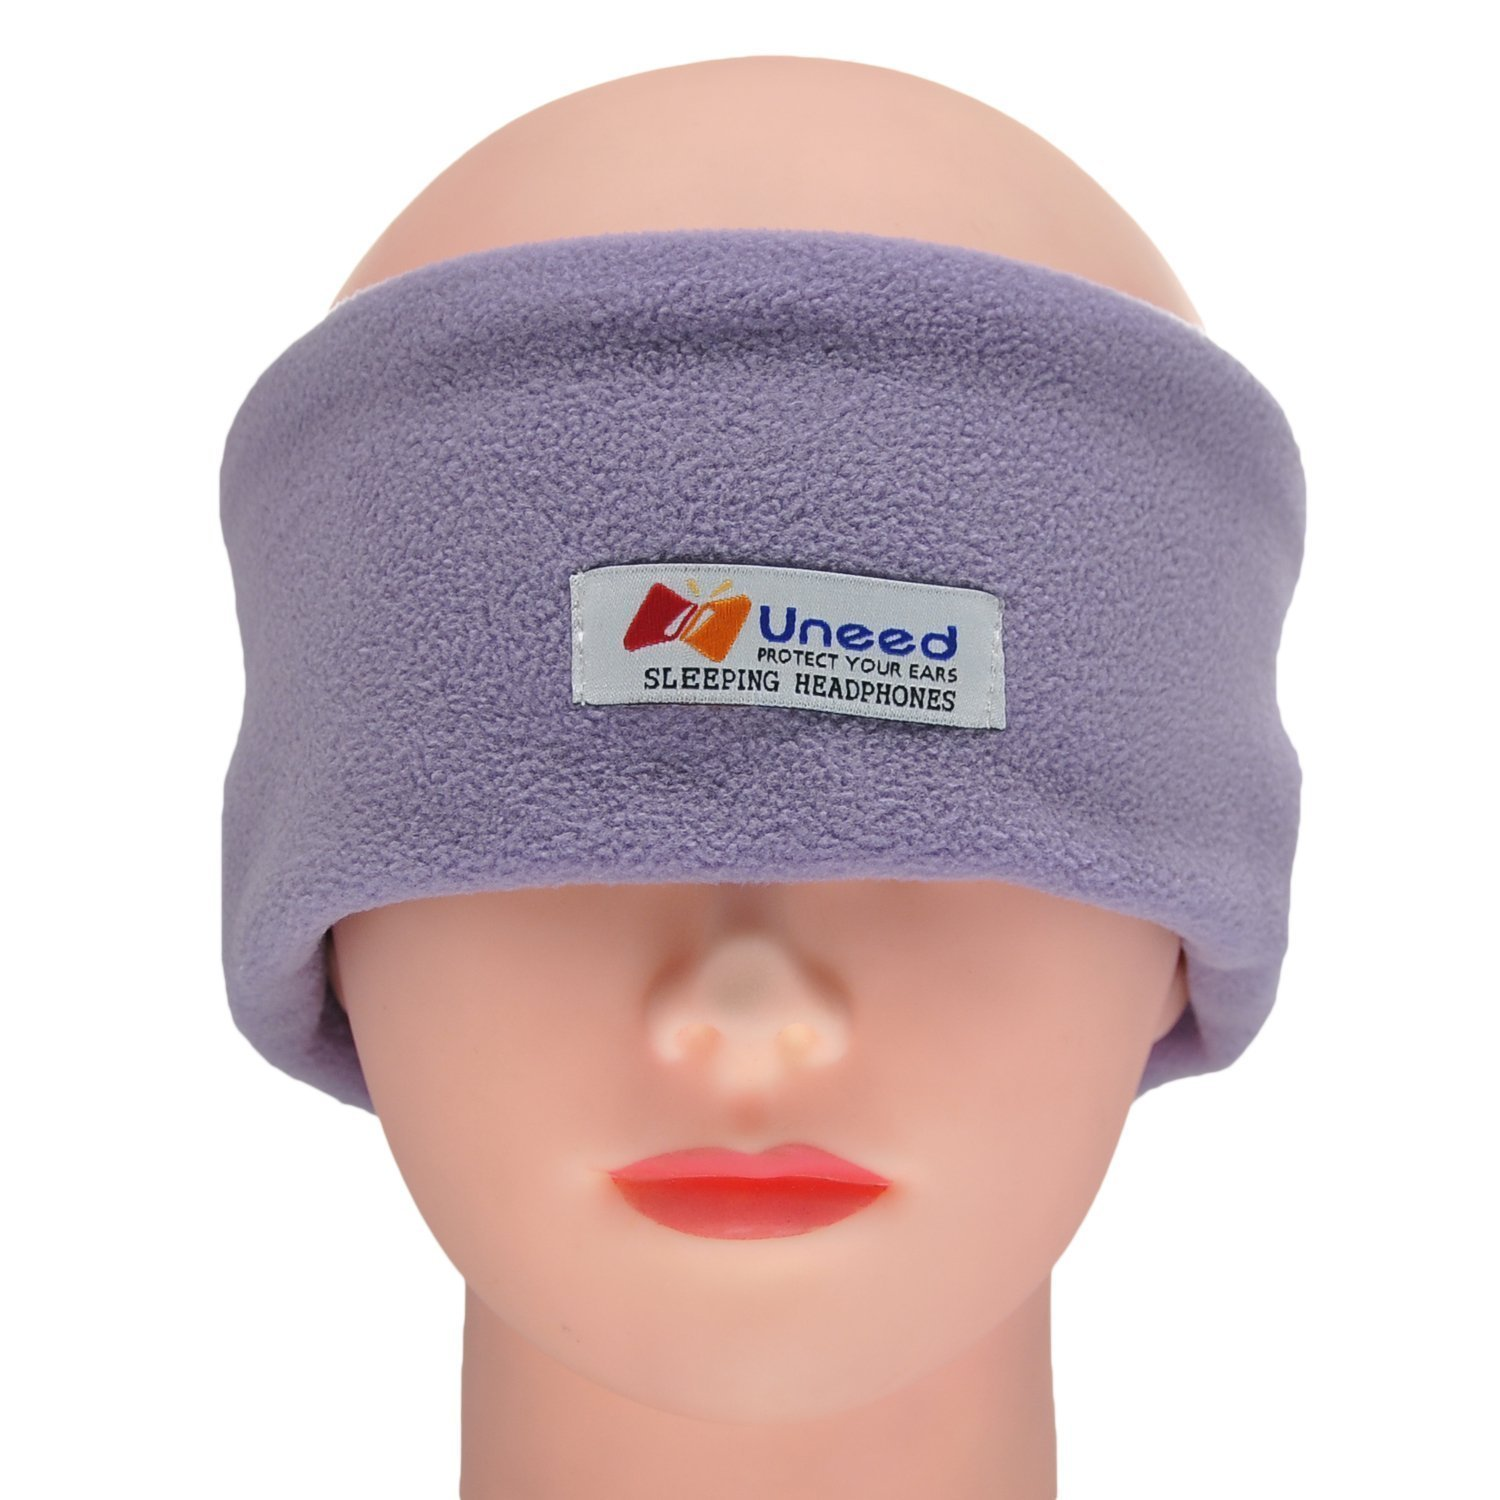 Morjava BK-015 Sleep Headphones - Ultra Thin - Sleep Mask- Most Comfortable Headphones for Sleeping - Perfect for Air Travel, Sports, Relaxation, Meditation and Relief from Insomnia -Purple